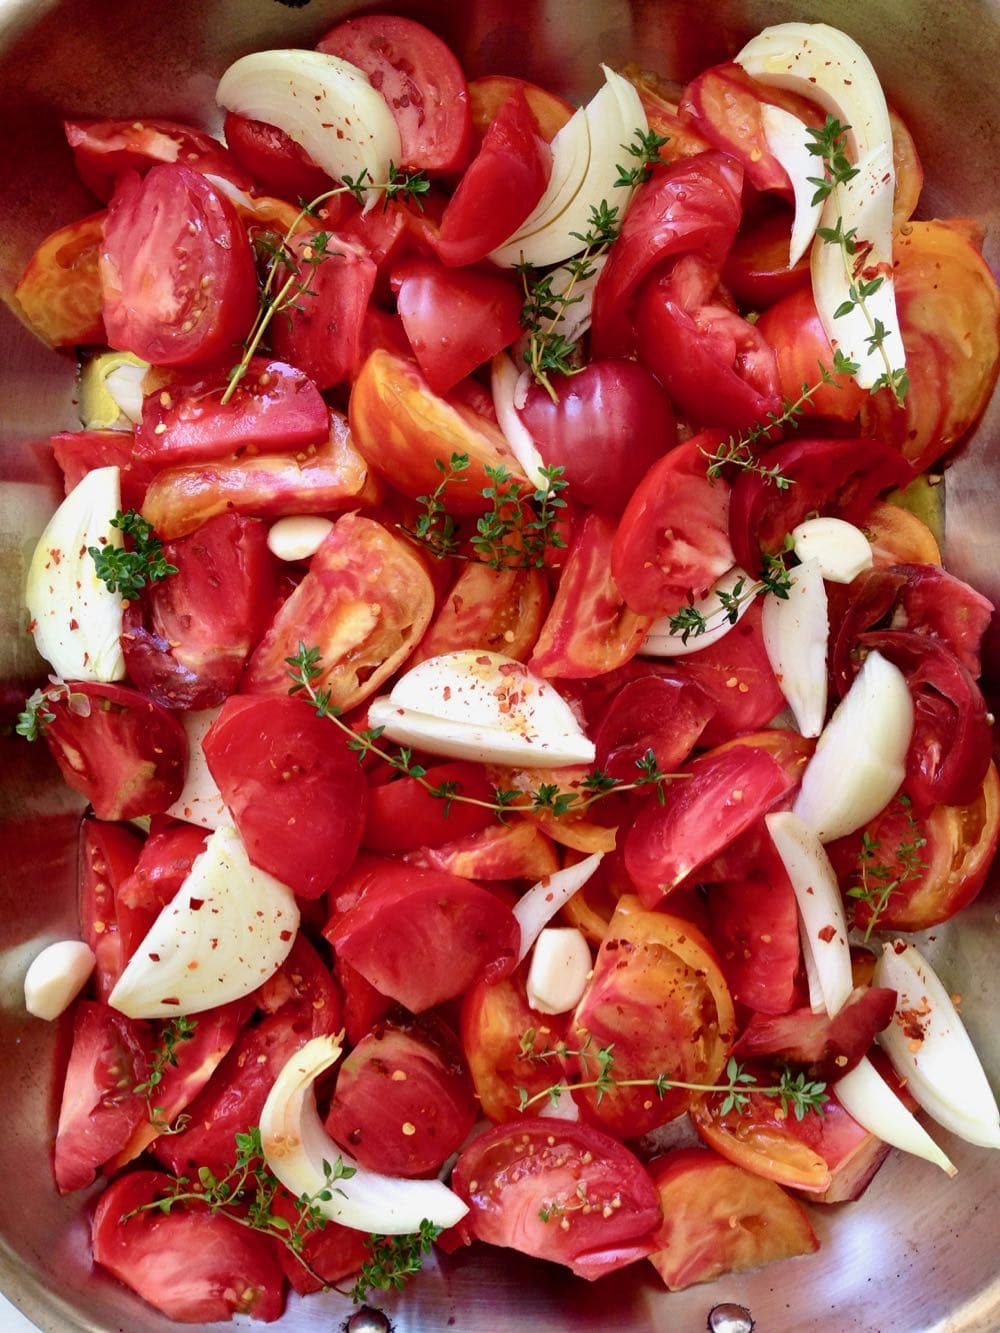 Heirloom Tomatoes, garlic, Onion and Fresh Herbs for Roasting